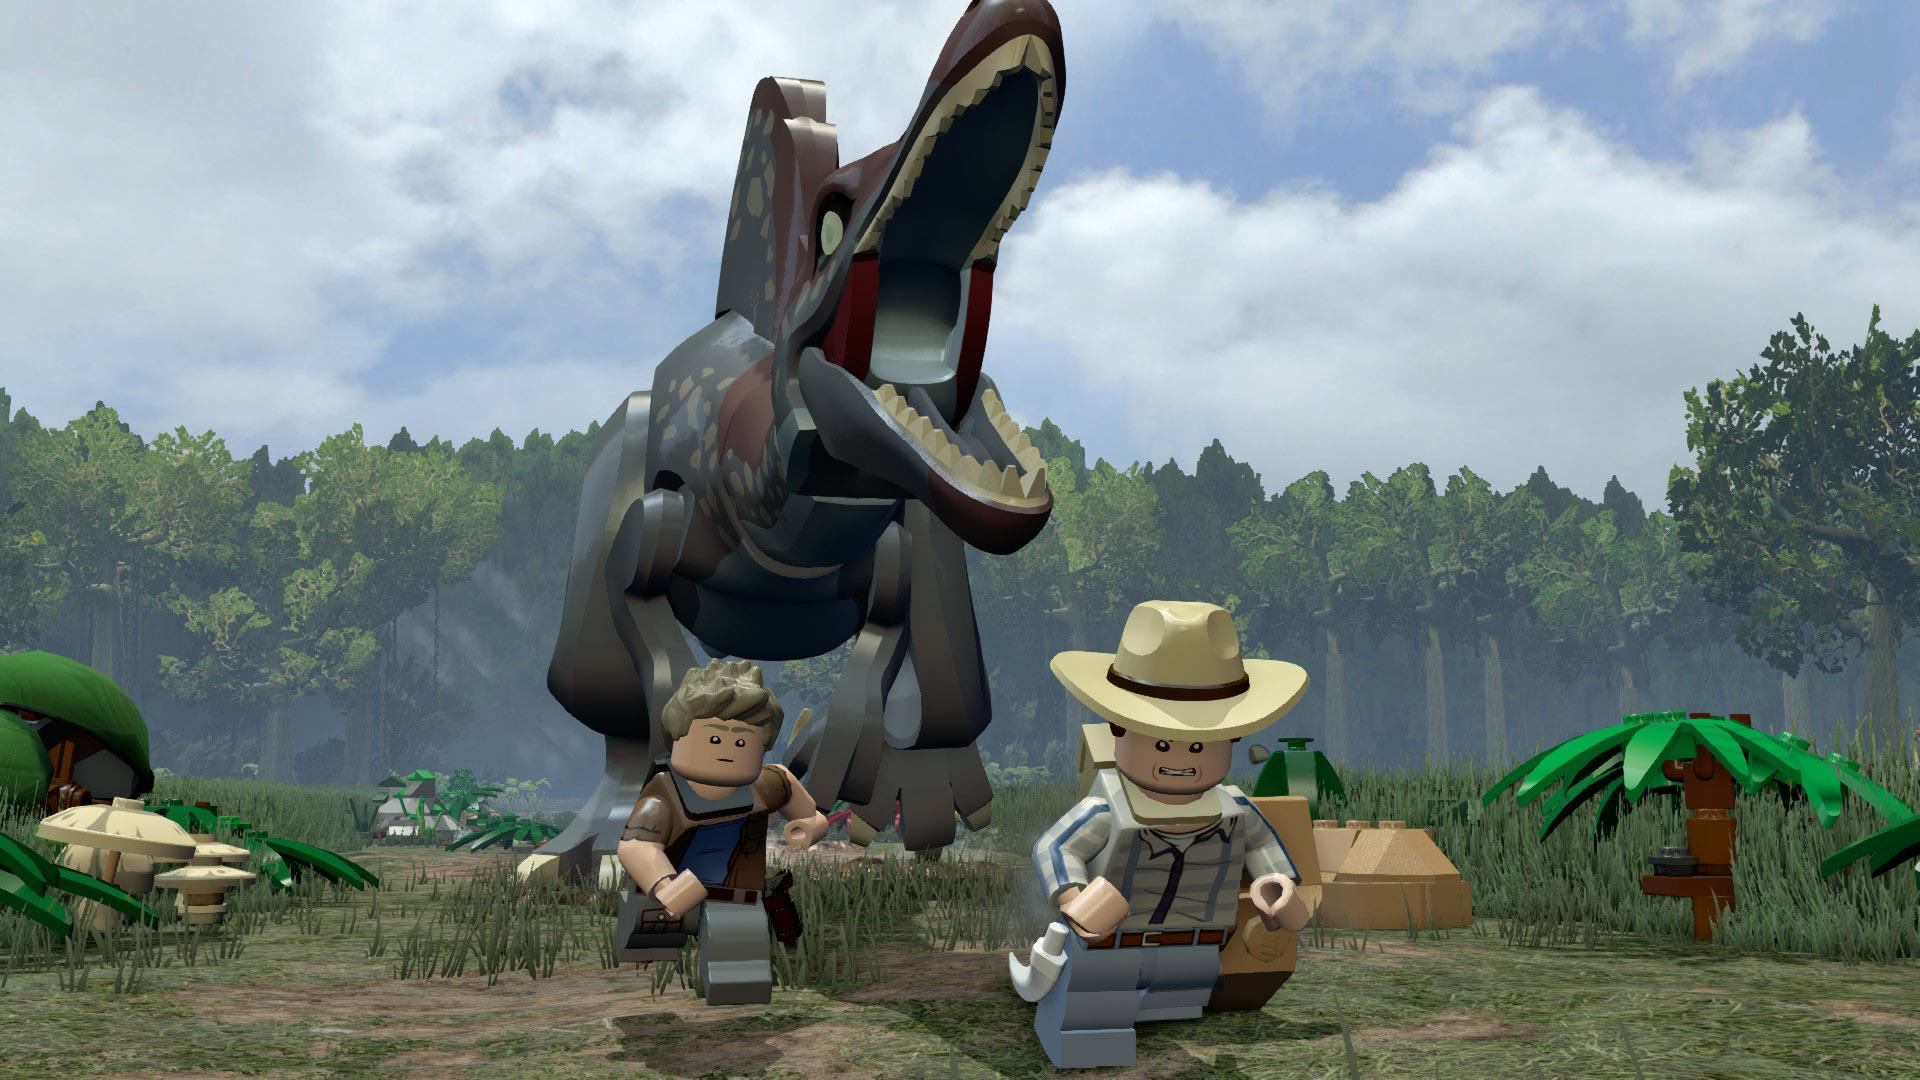 Lego jurassic world review dino smash tech times tt games makes the most of even this movie though proving that lego can make something fun out of just about anything gumiabroncs Images